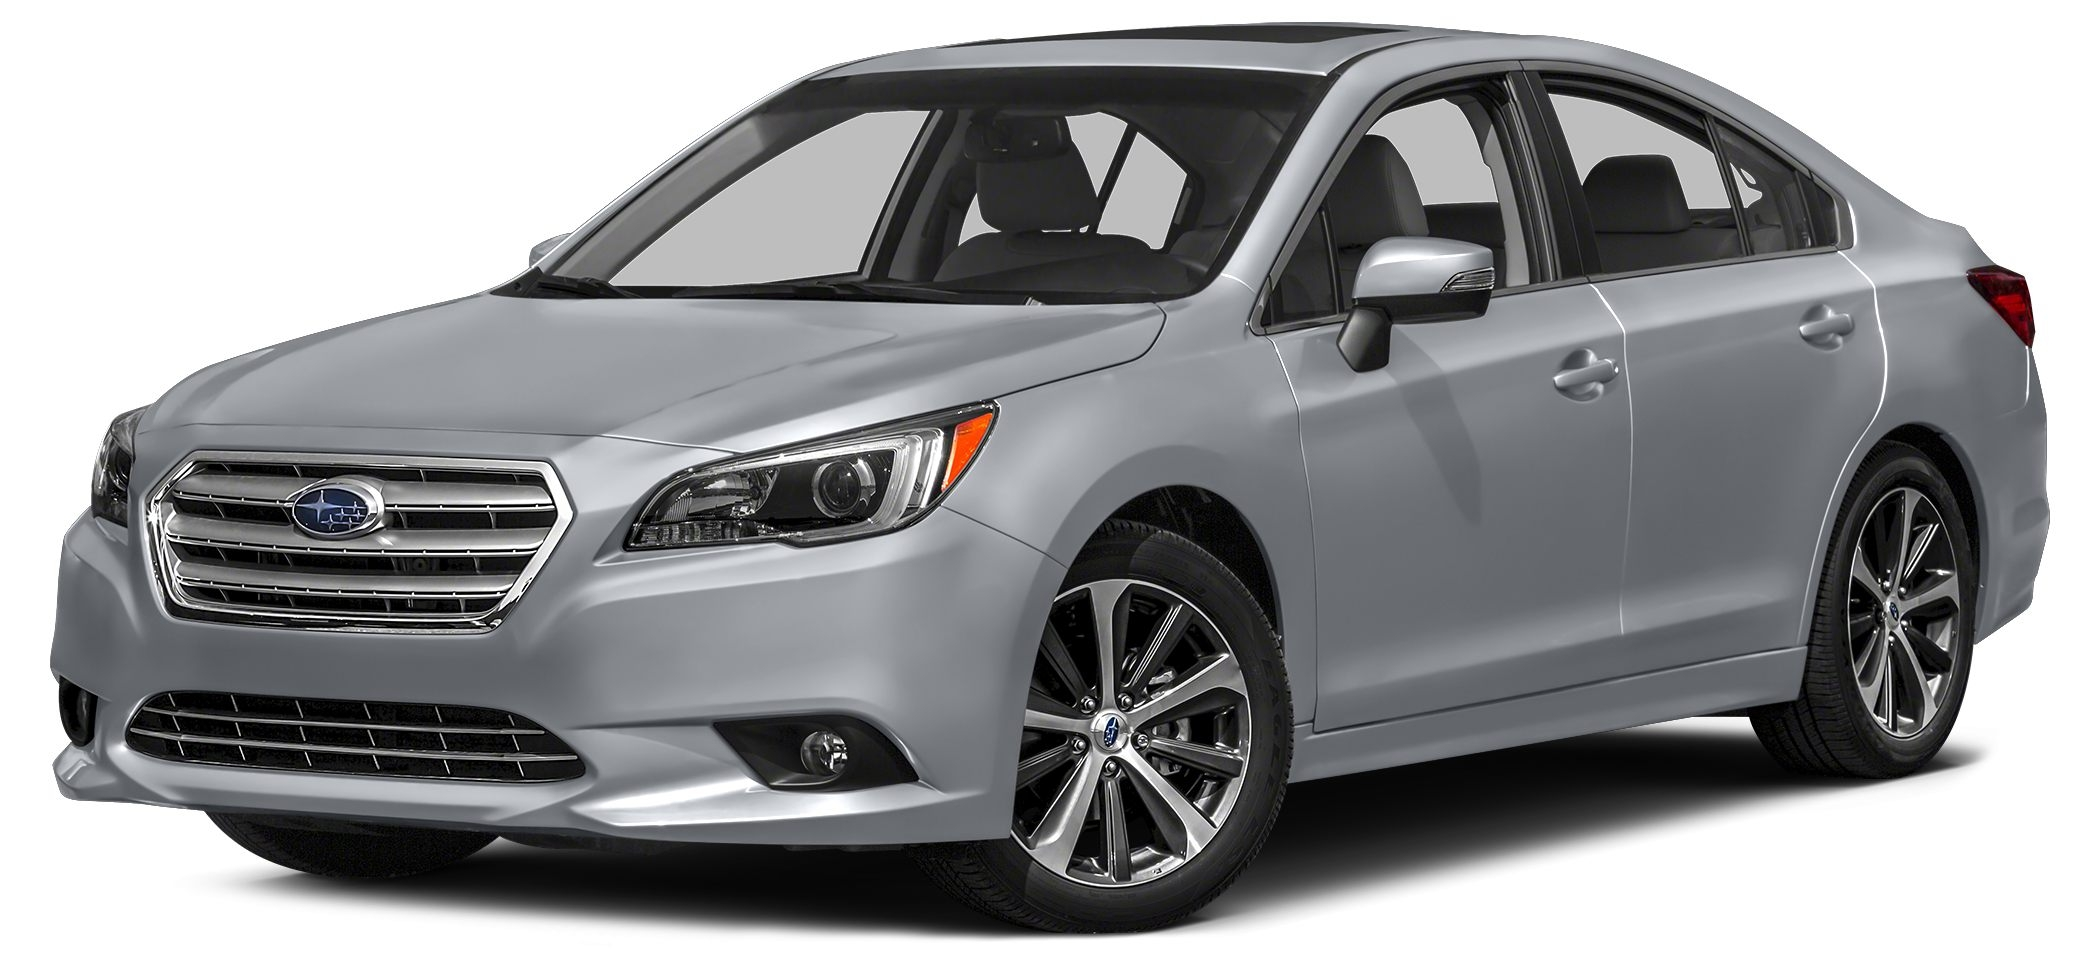 subaru new cars for sale in norwood, ma on the automile | clay subaru subaru legacy invoice price